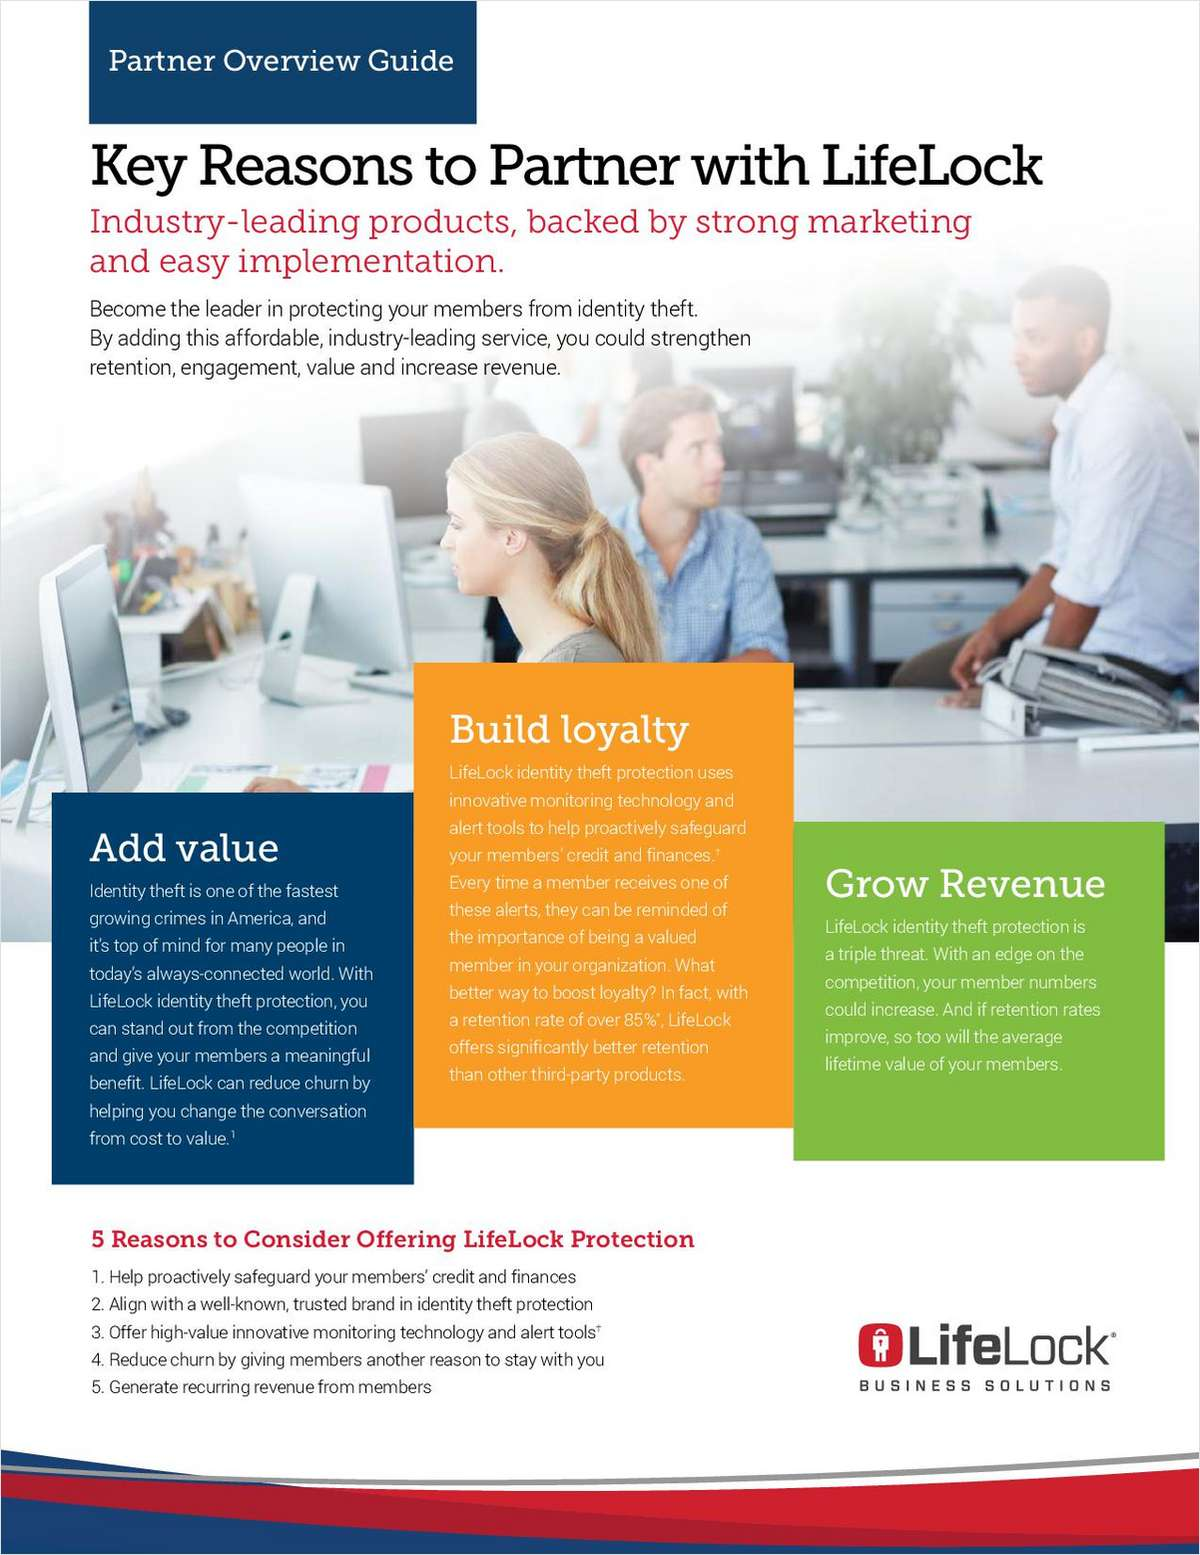 Key Reasons to Partner with LifeLock